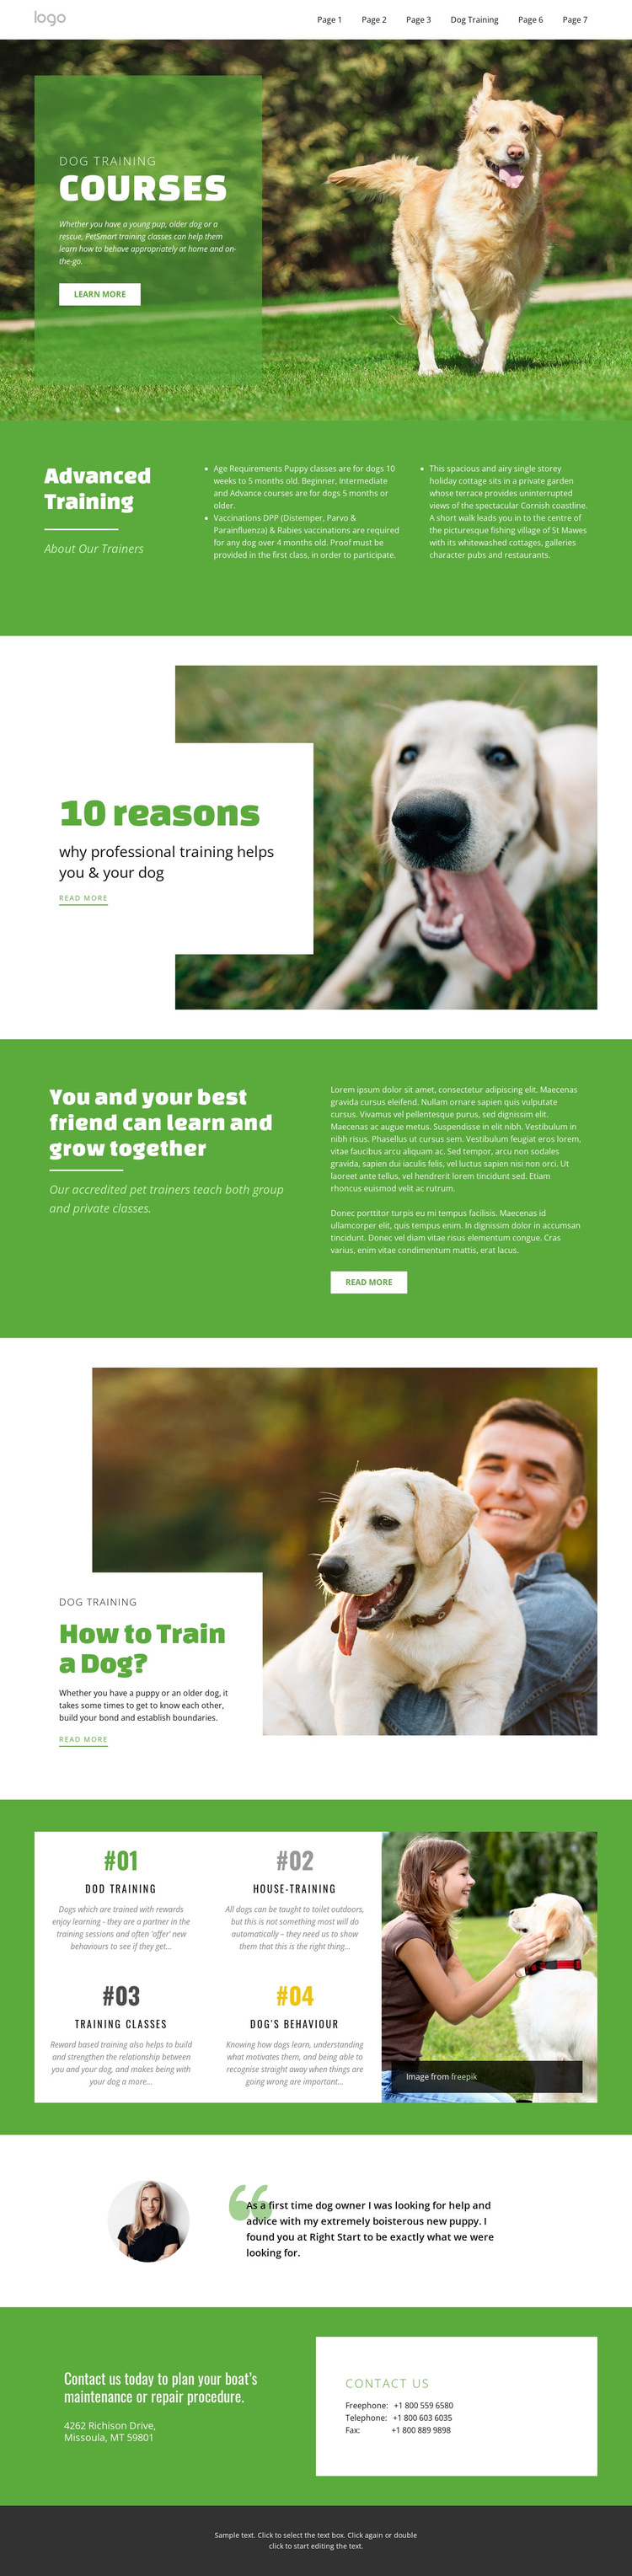 Training courses for pets HTML5 Template